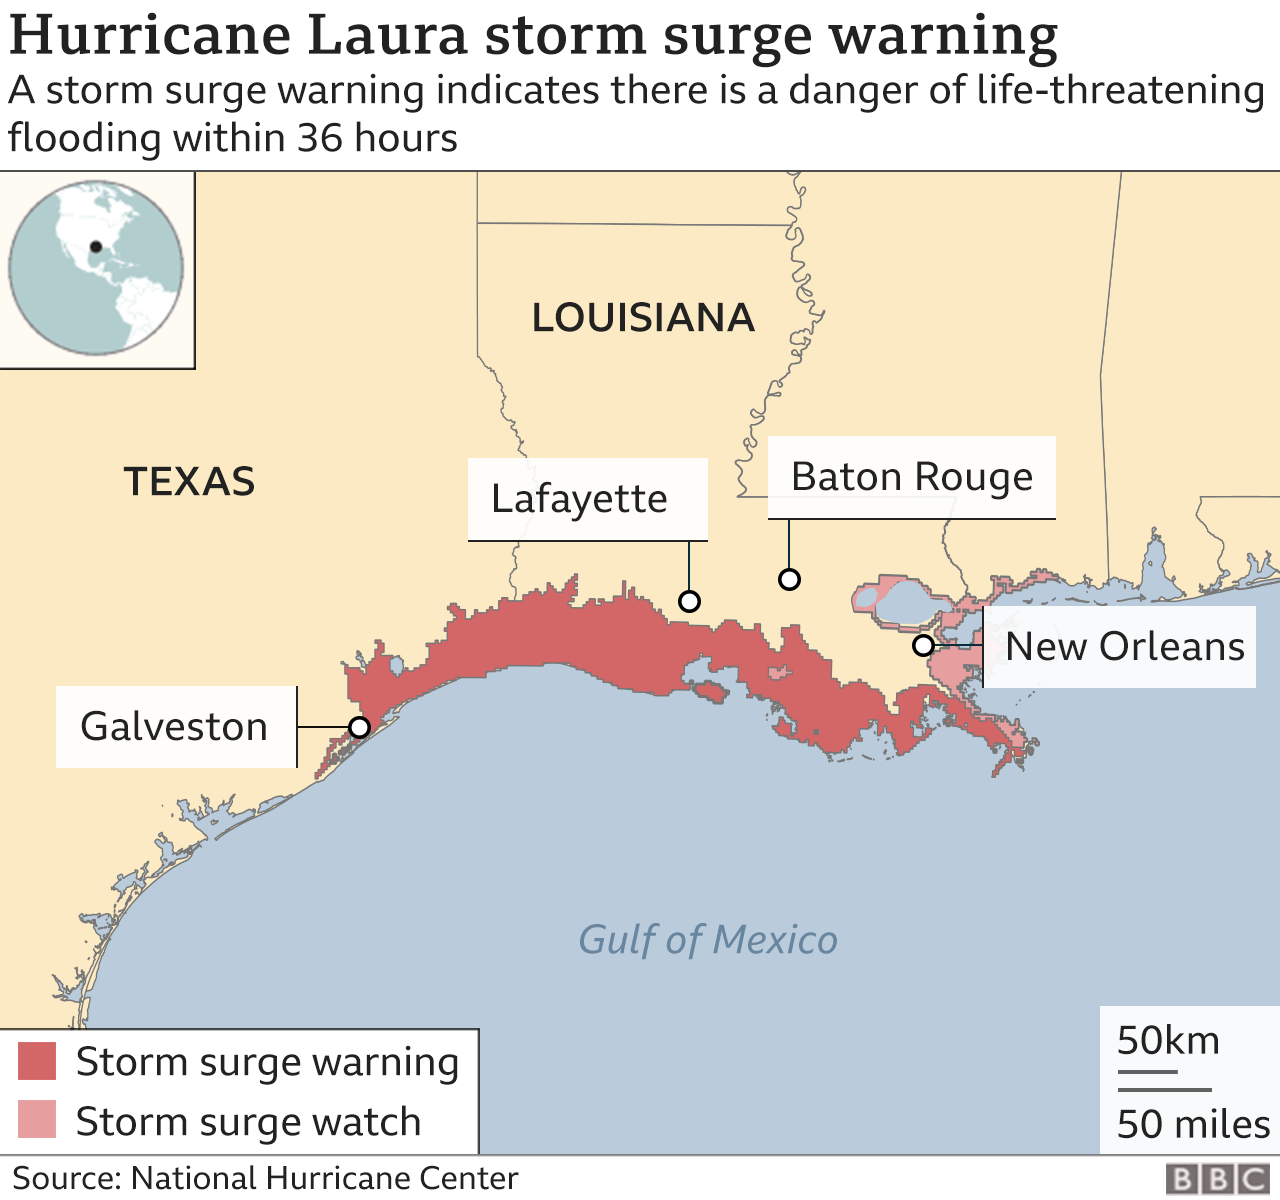 Map Of Louisiana Flooding 2020 Hurricane Laura 'will cause unsurvivable storm surge'   BBC News